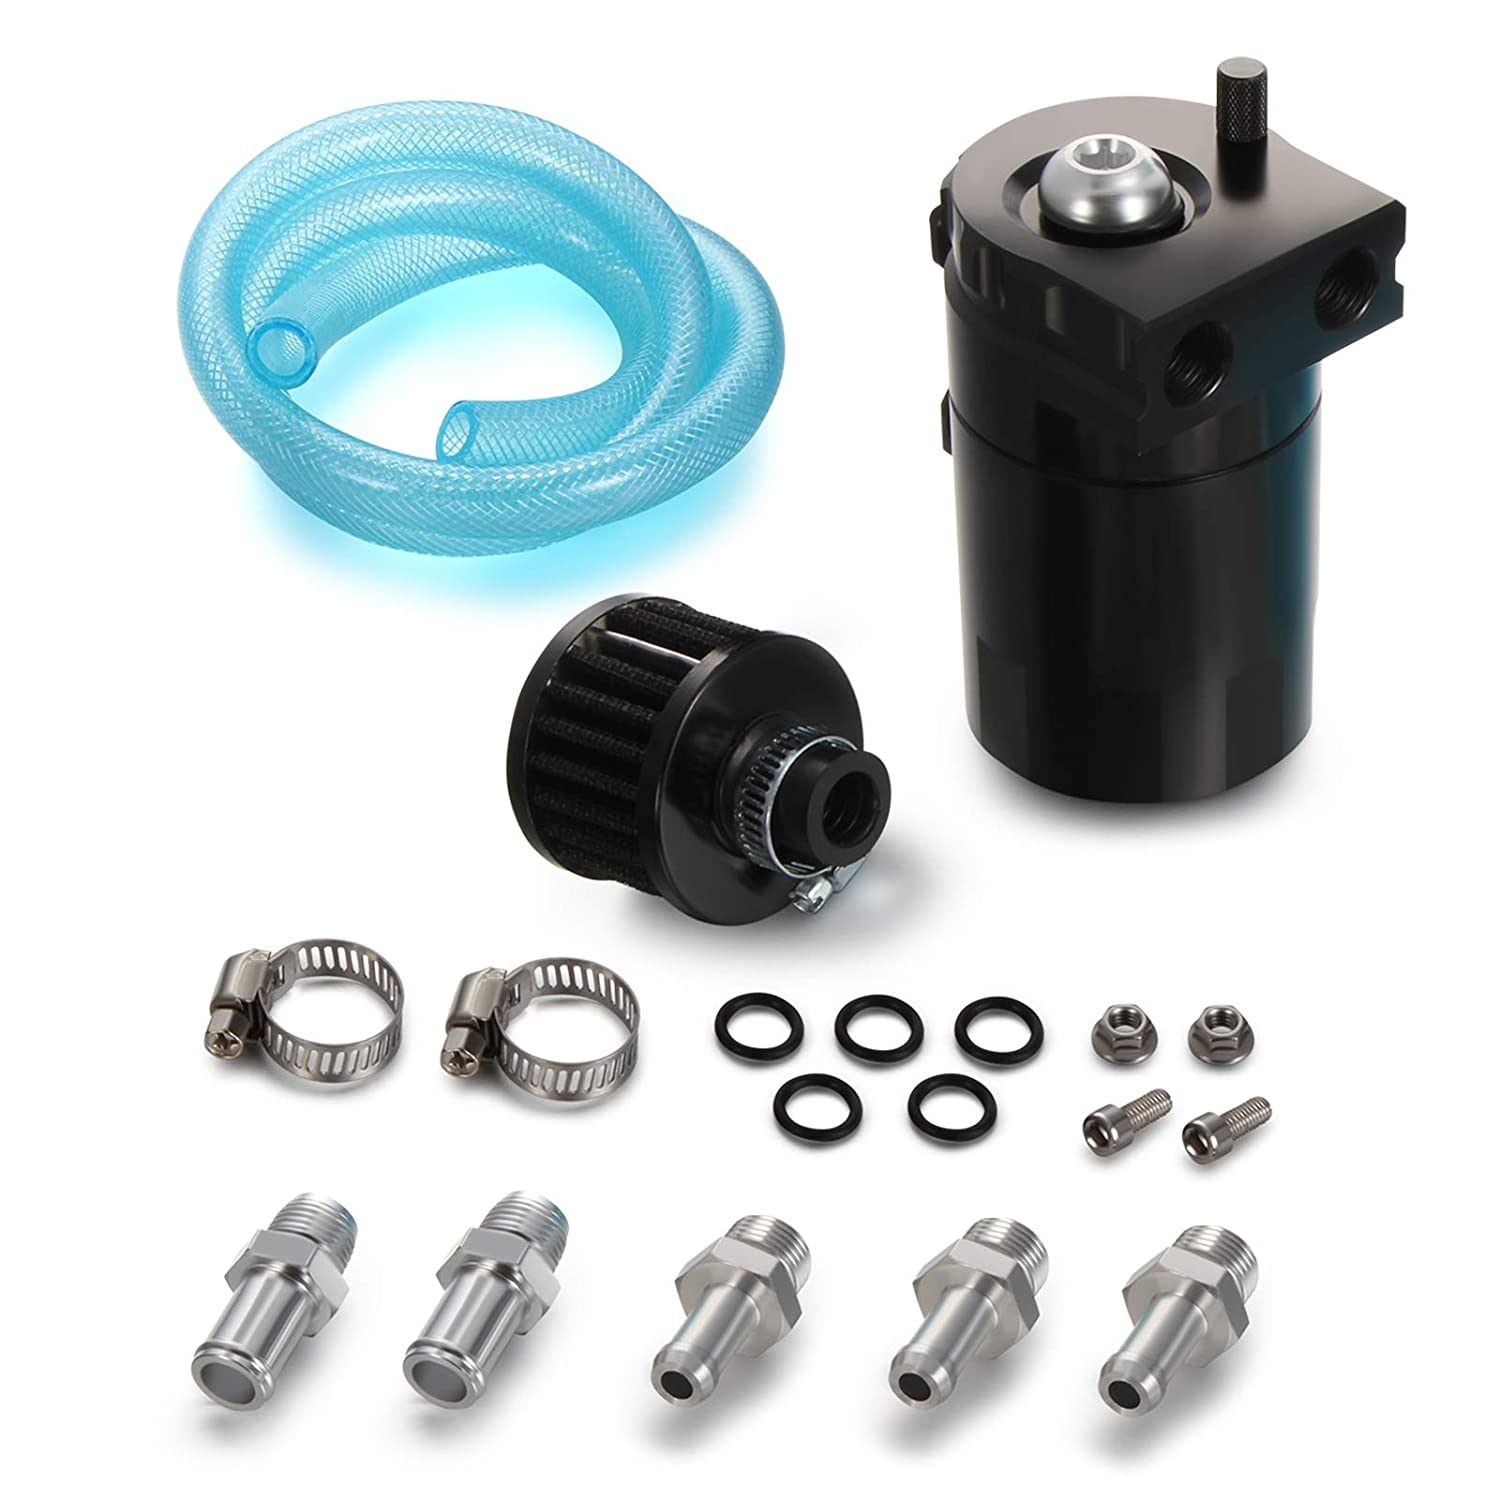 Twilight Garage Polish Baffled Universal Aluminum Oil Catch Breather Can Reservoir Tank 300ML With Breather Filter - Black